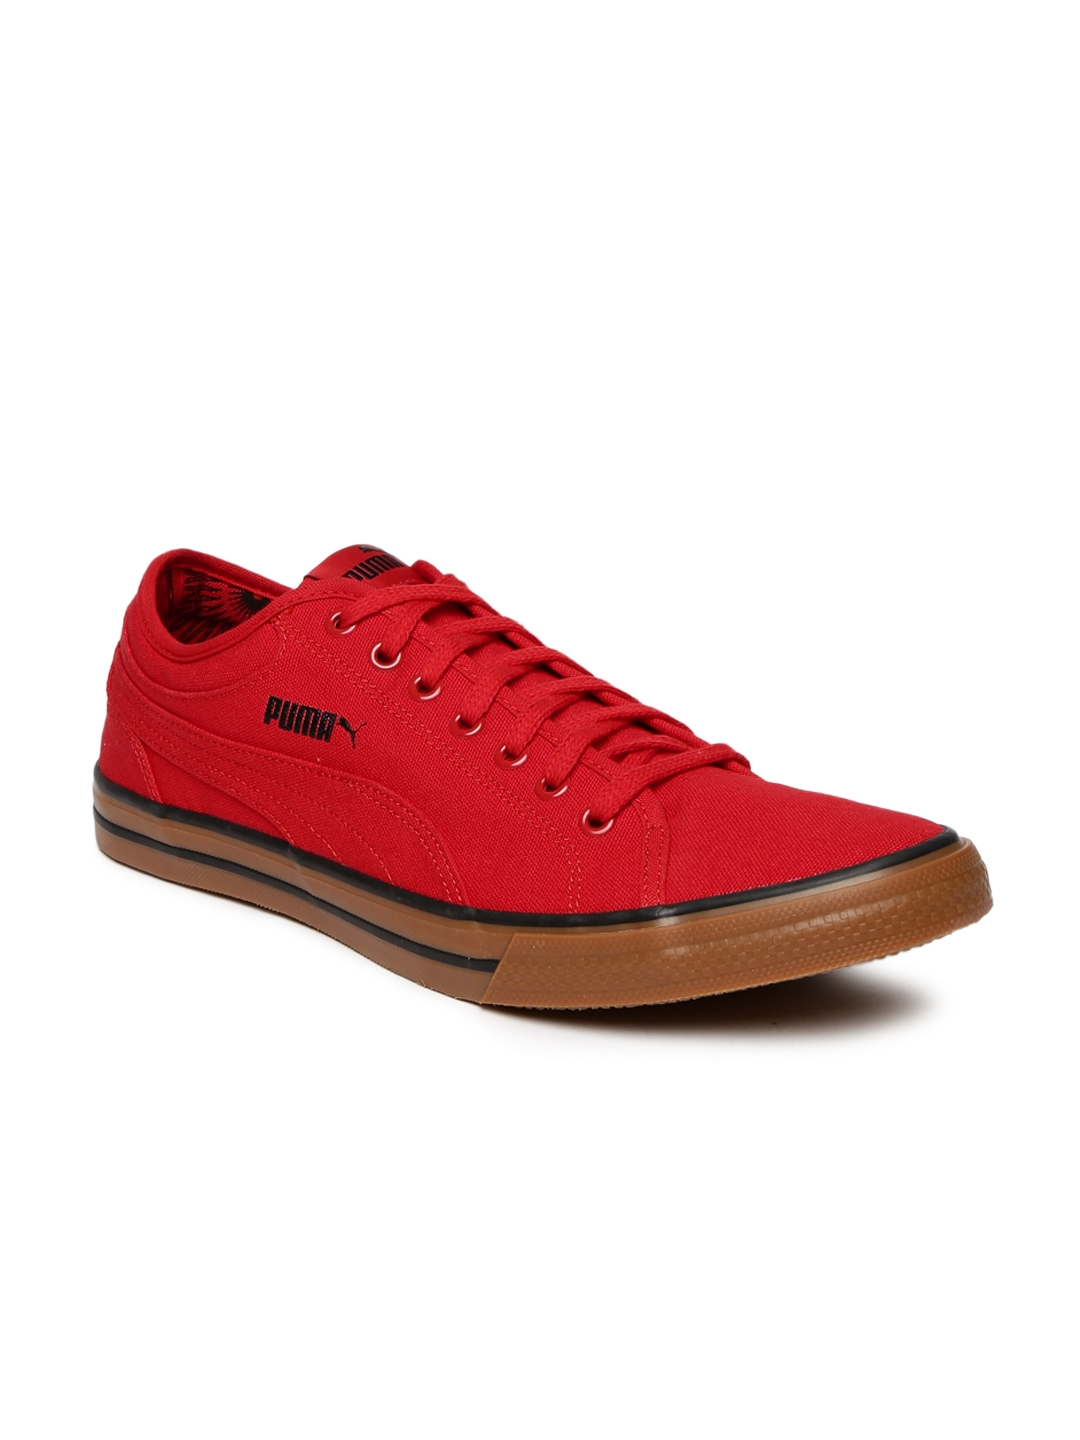 05f14d87f96b60 Buy Puma Unisex Red Yale Gum Solid Canvas Sneakers - Casual Shoes ...